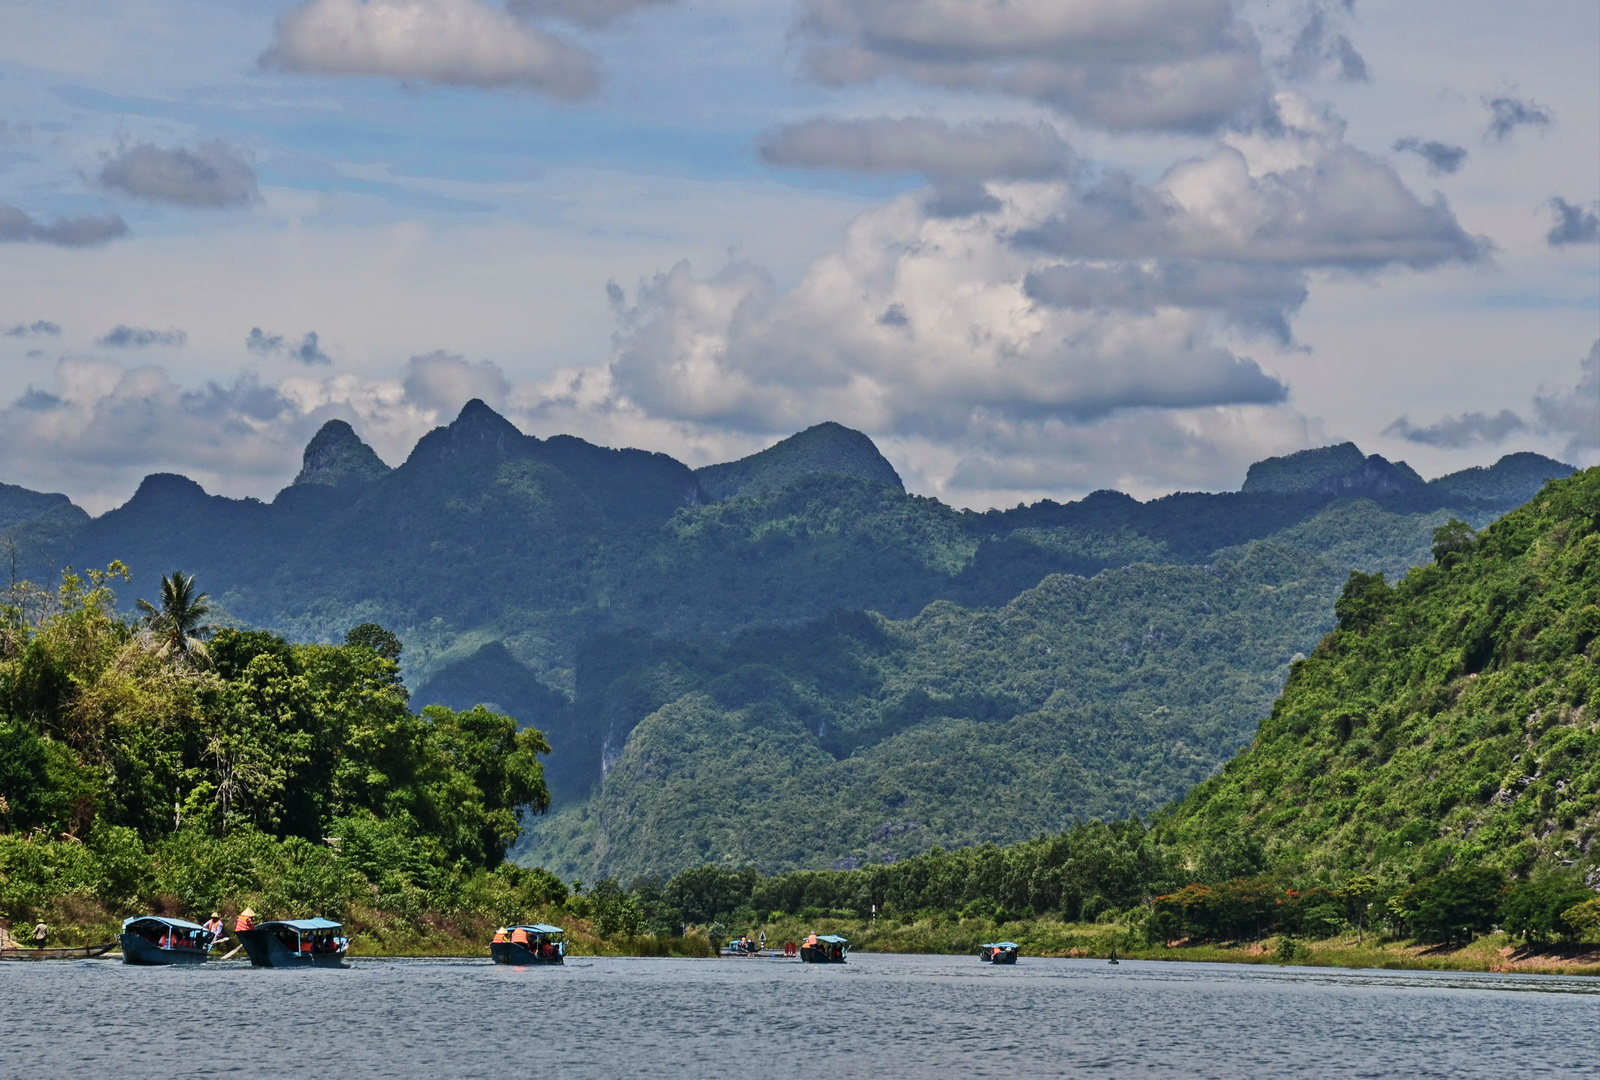 Vietnam, the Son River at Phong Nha-Ke Bang